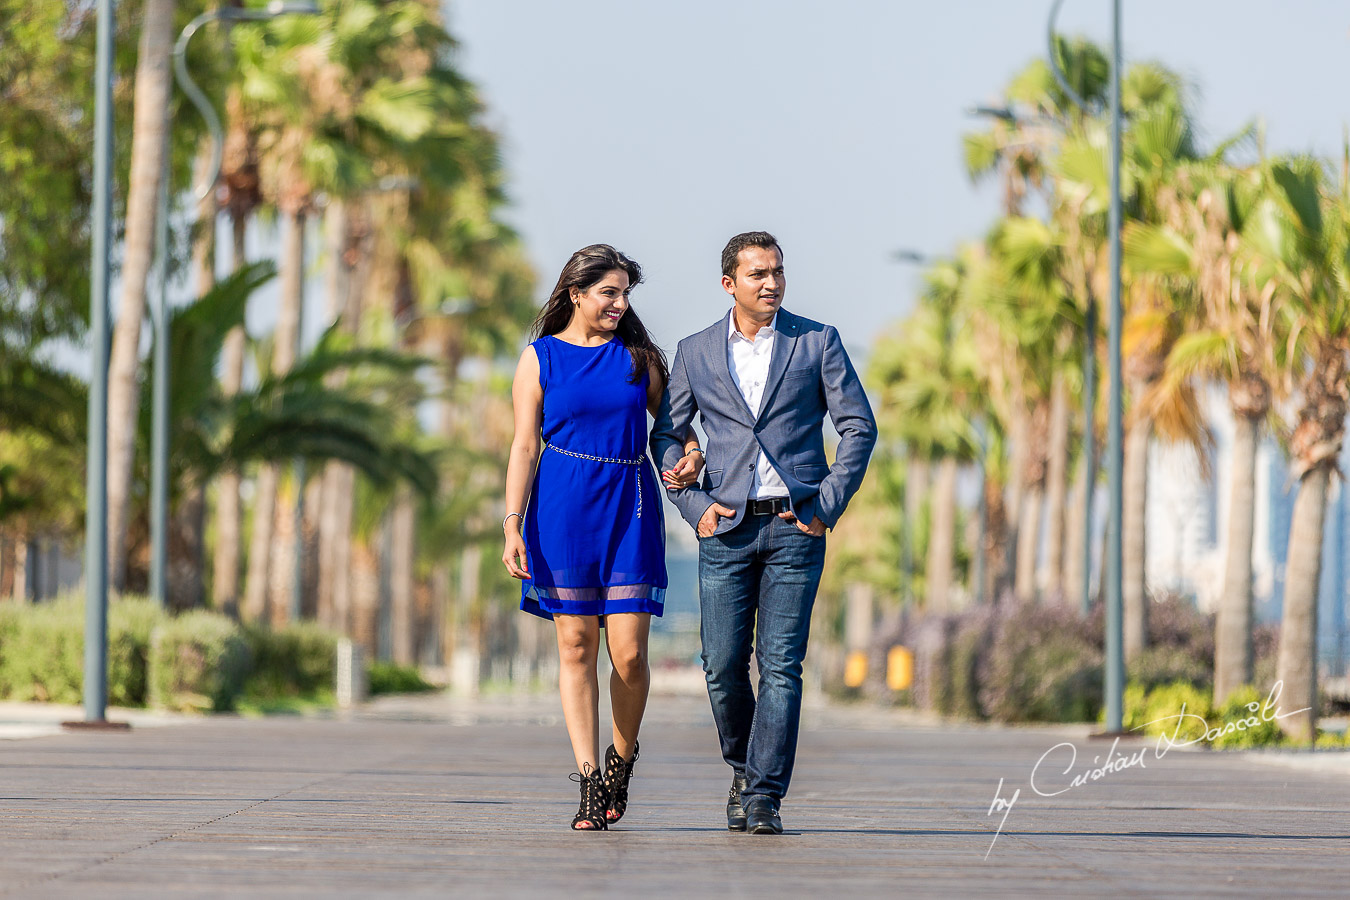 An After-Wedding Photo Shoot in Cyprus - 06